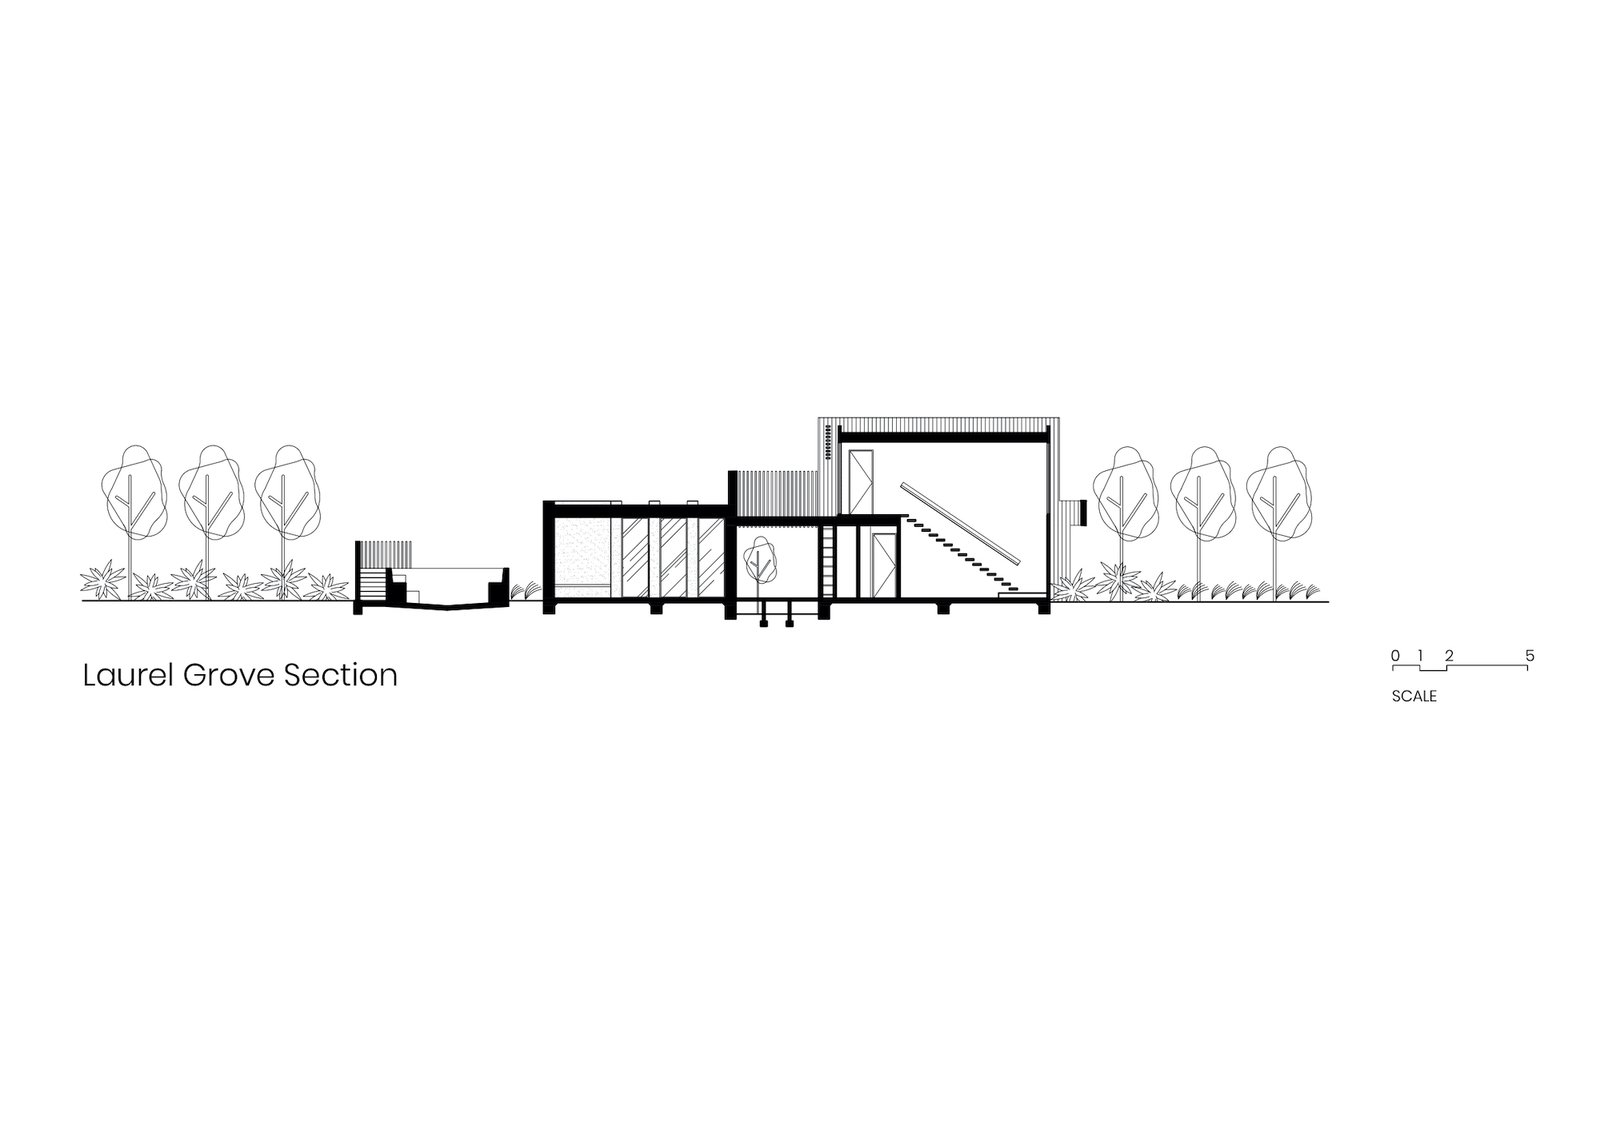 Section of Laurel Grove by Kirsten Johnstone Architecture.